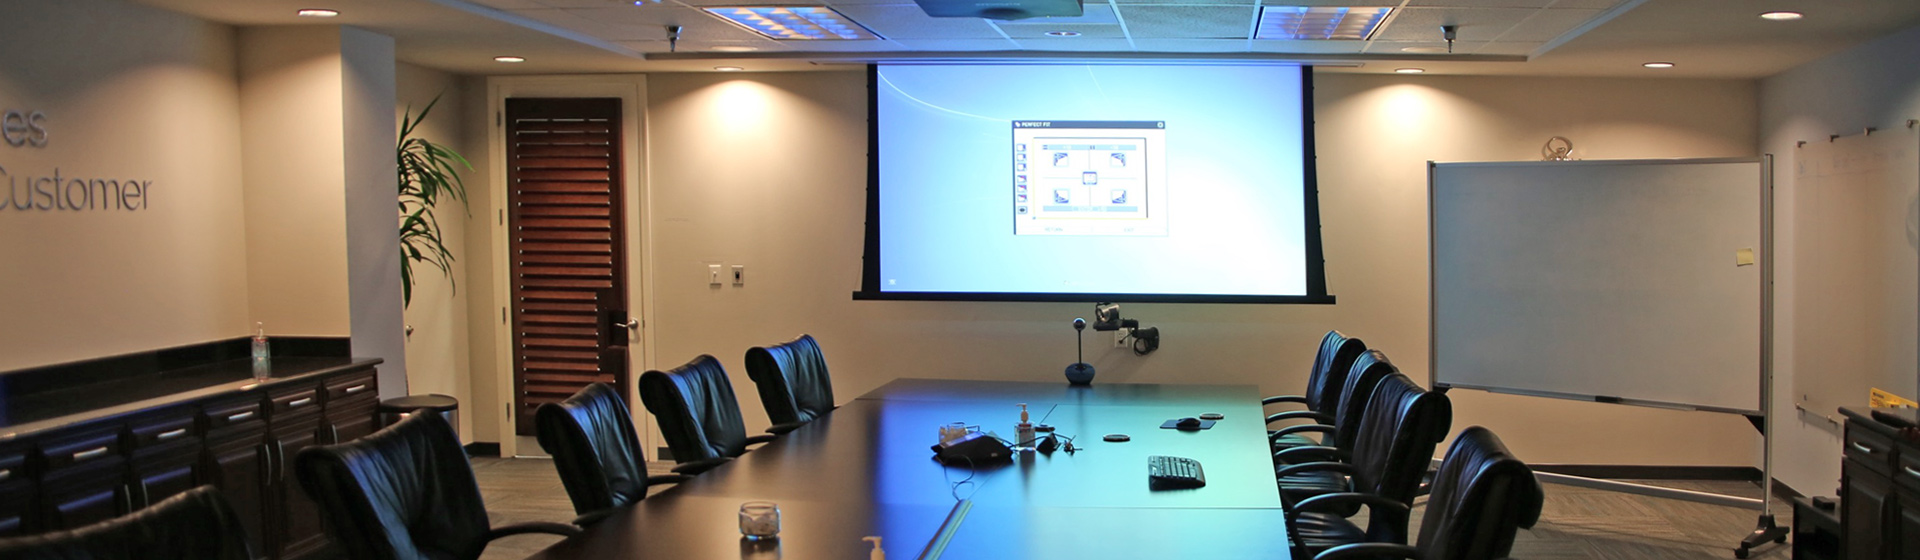 Conference Room Projector Installation | Tampa Bay | High Definition Audio Video, Inc.